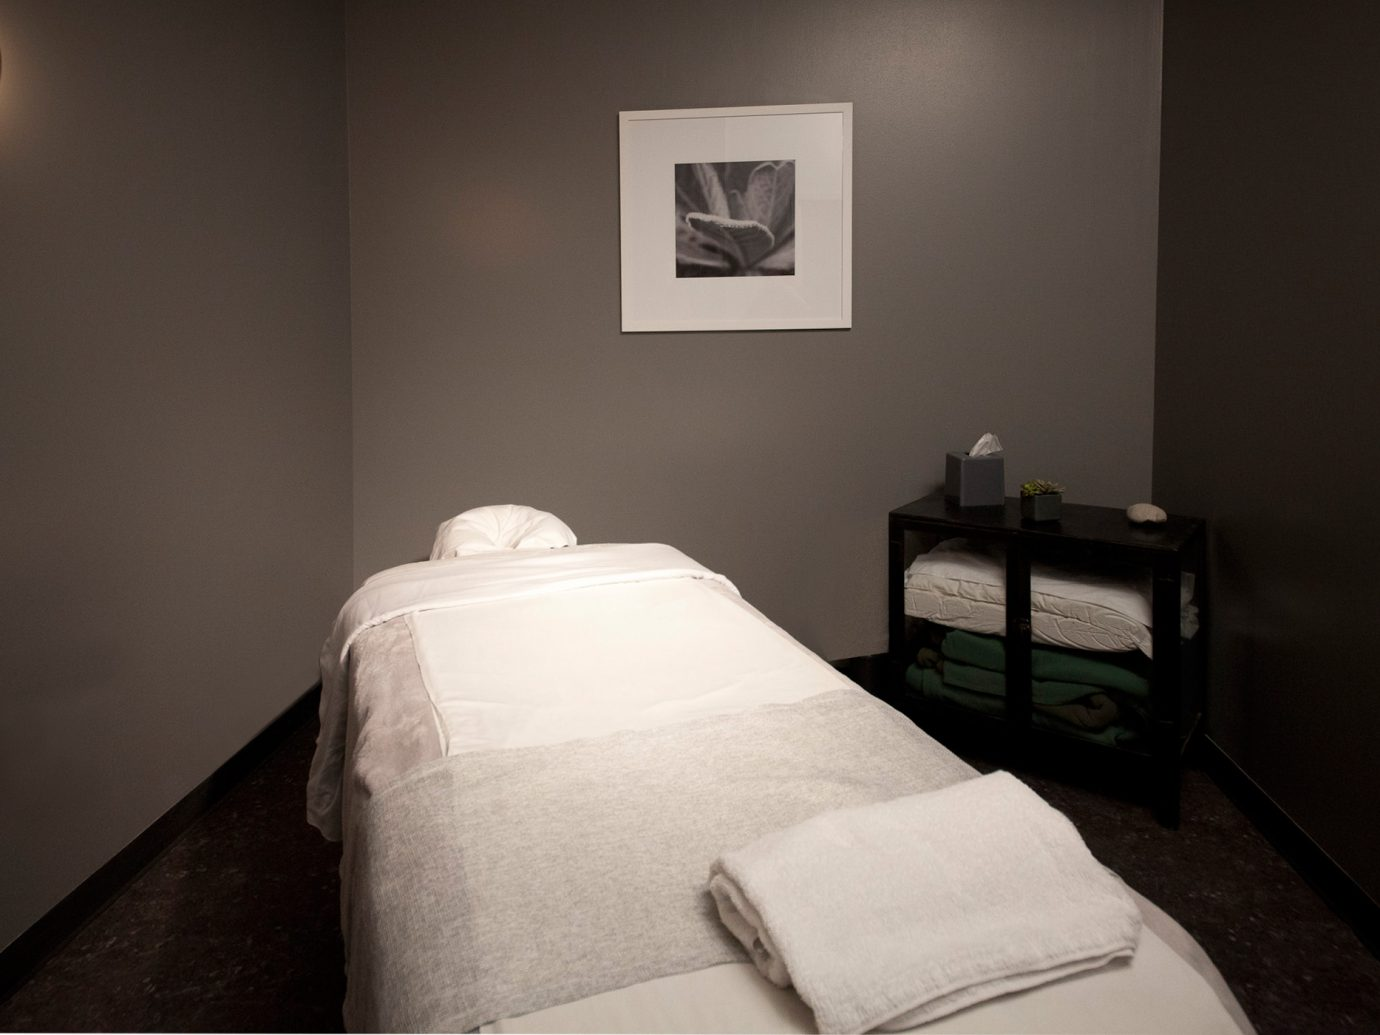 Bed at Oasis Day Spa in NYC